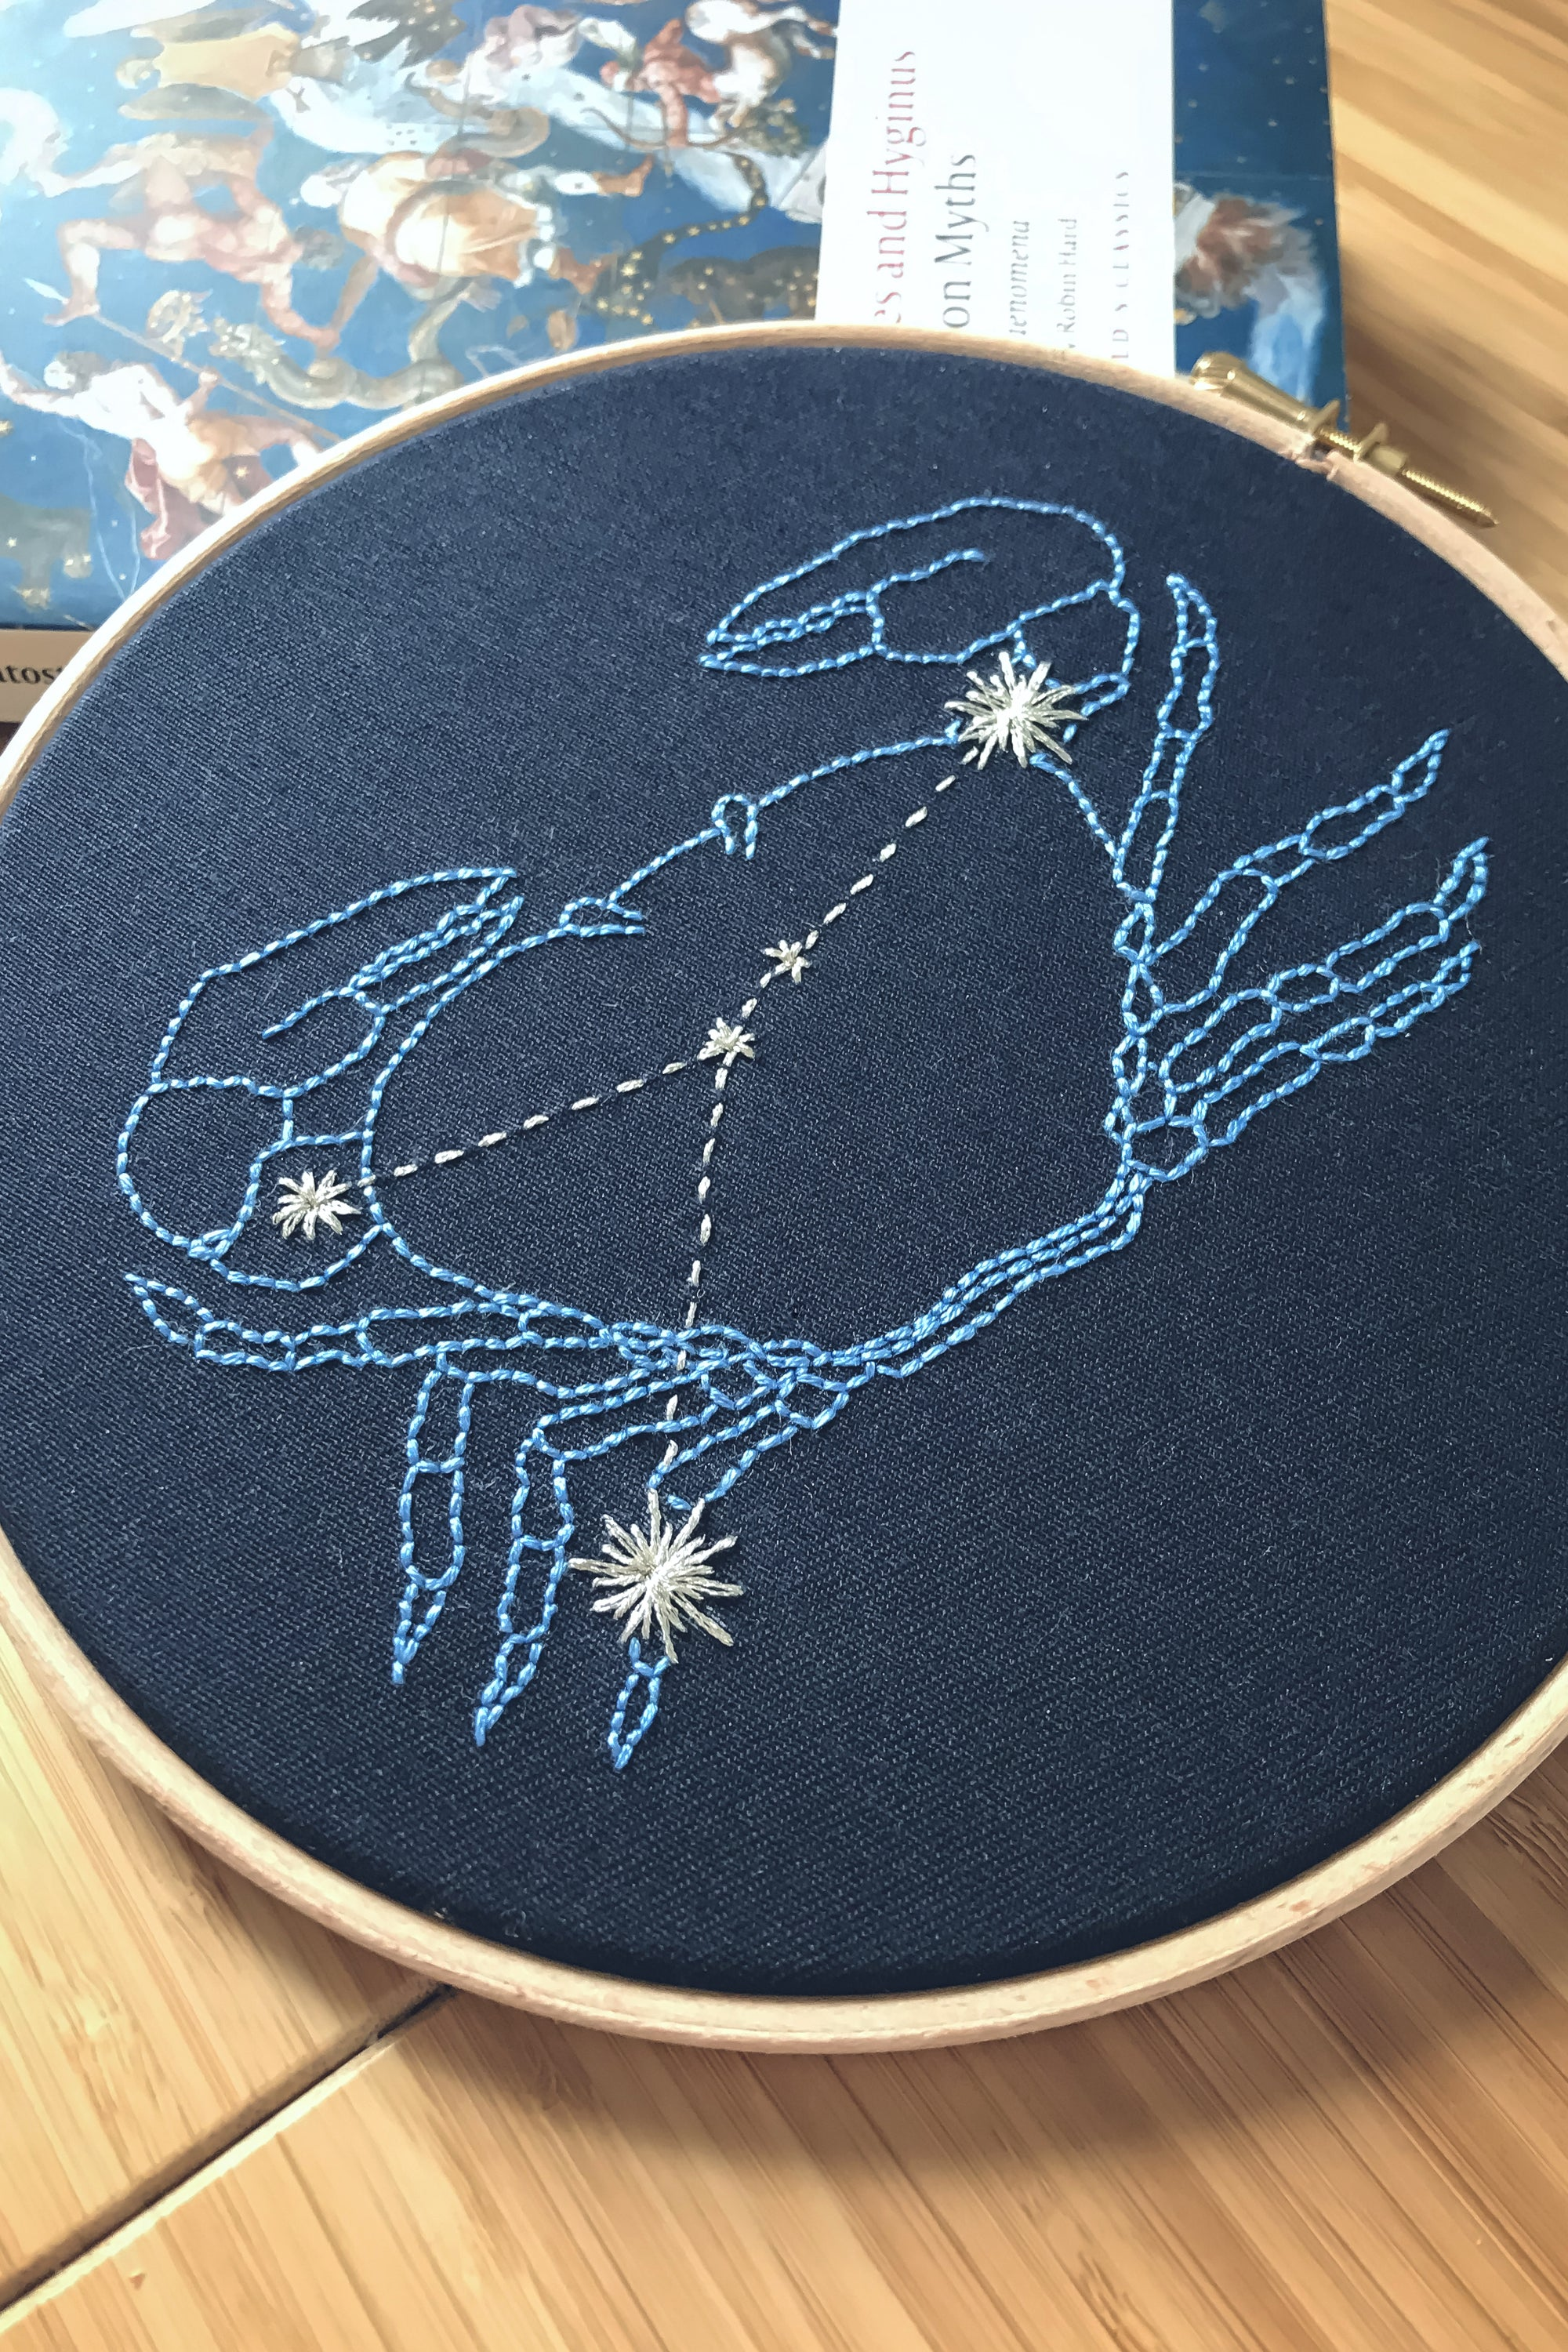 Cancer constellation embroidery hoop